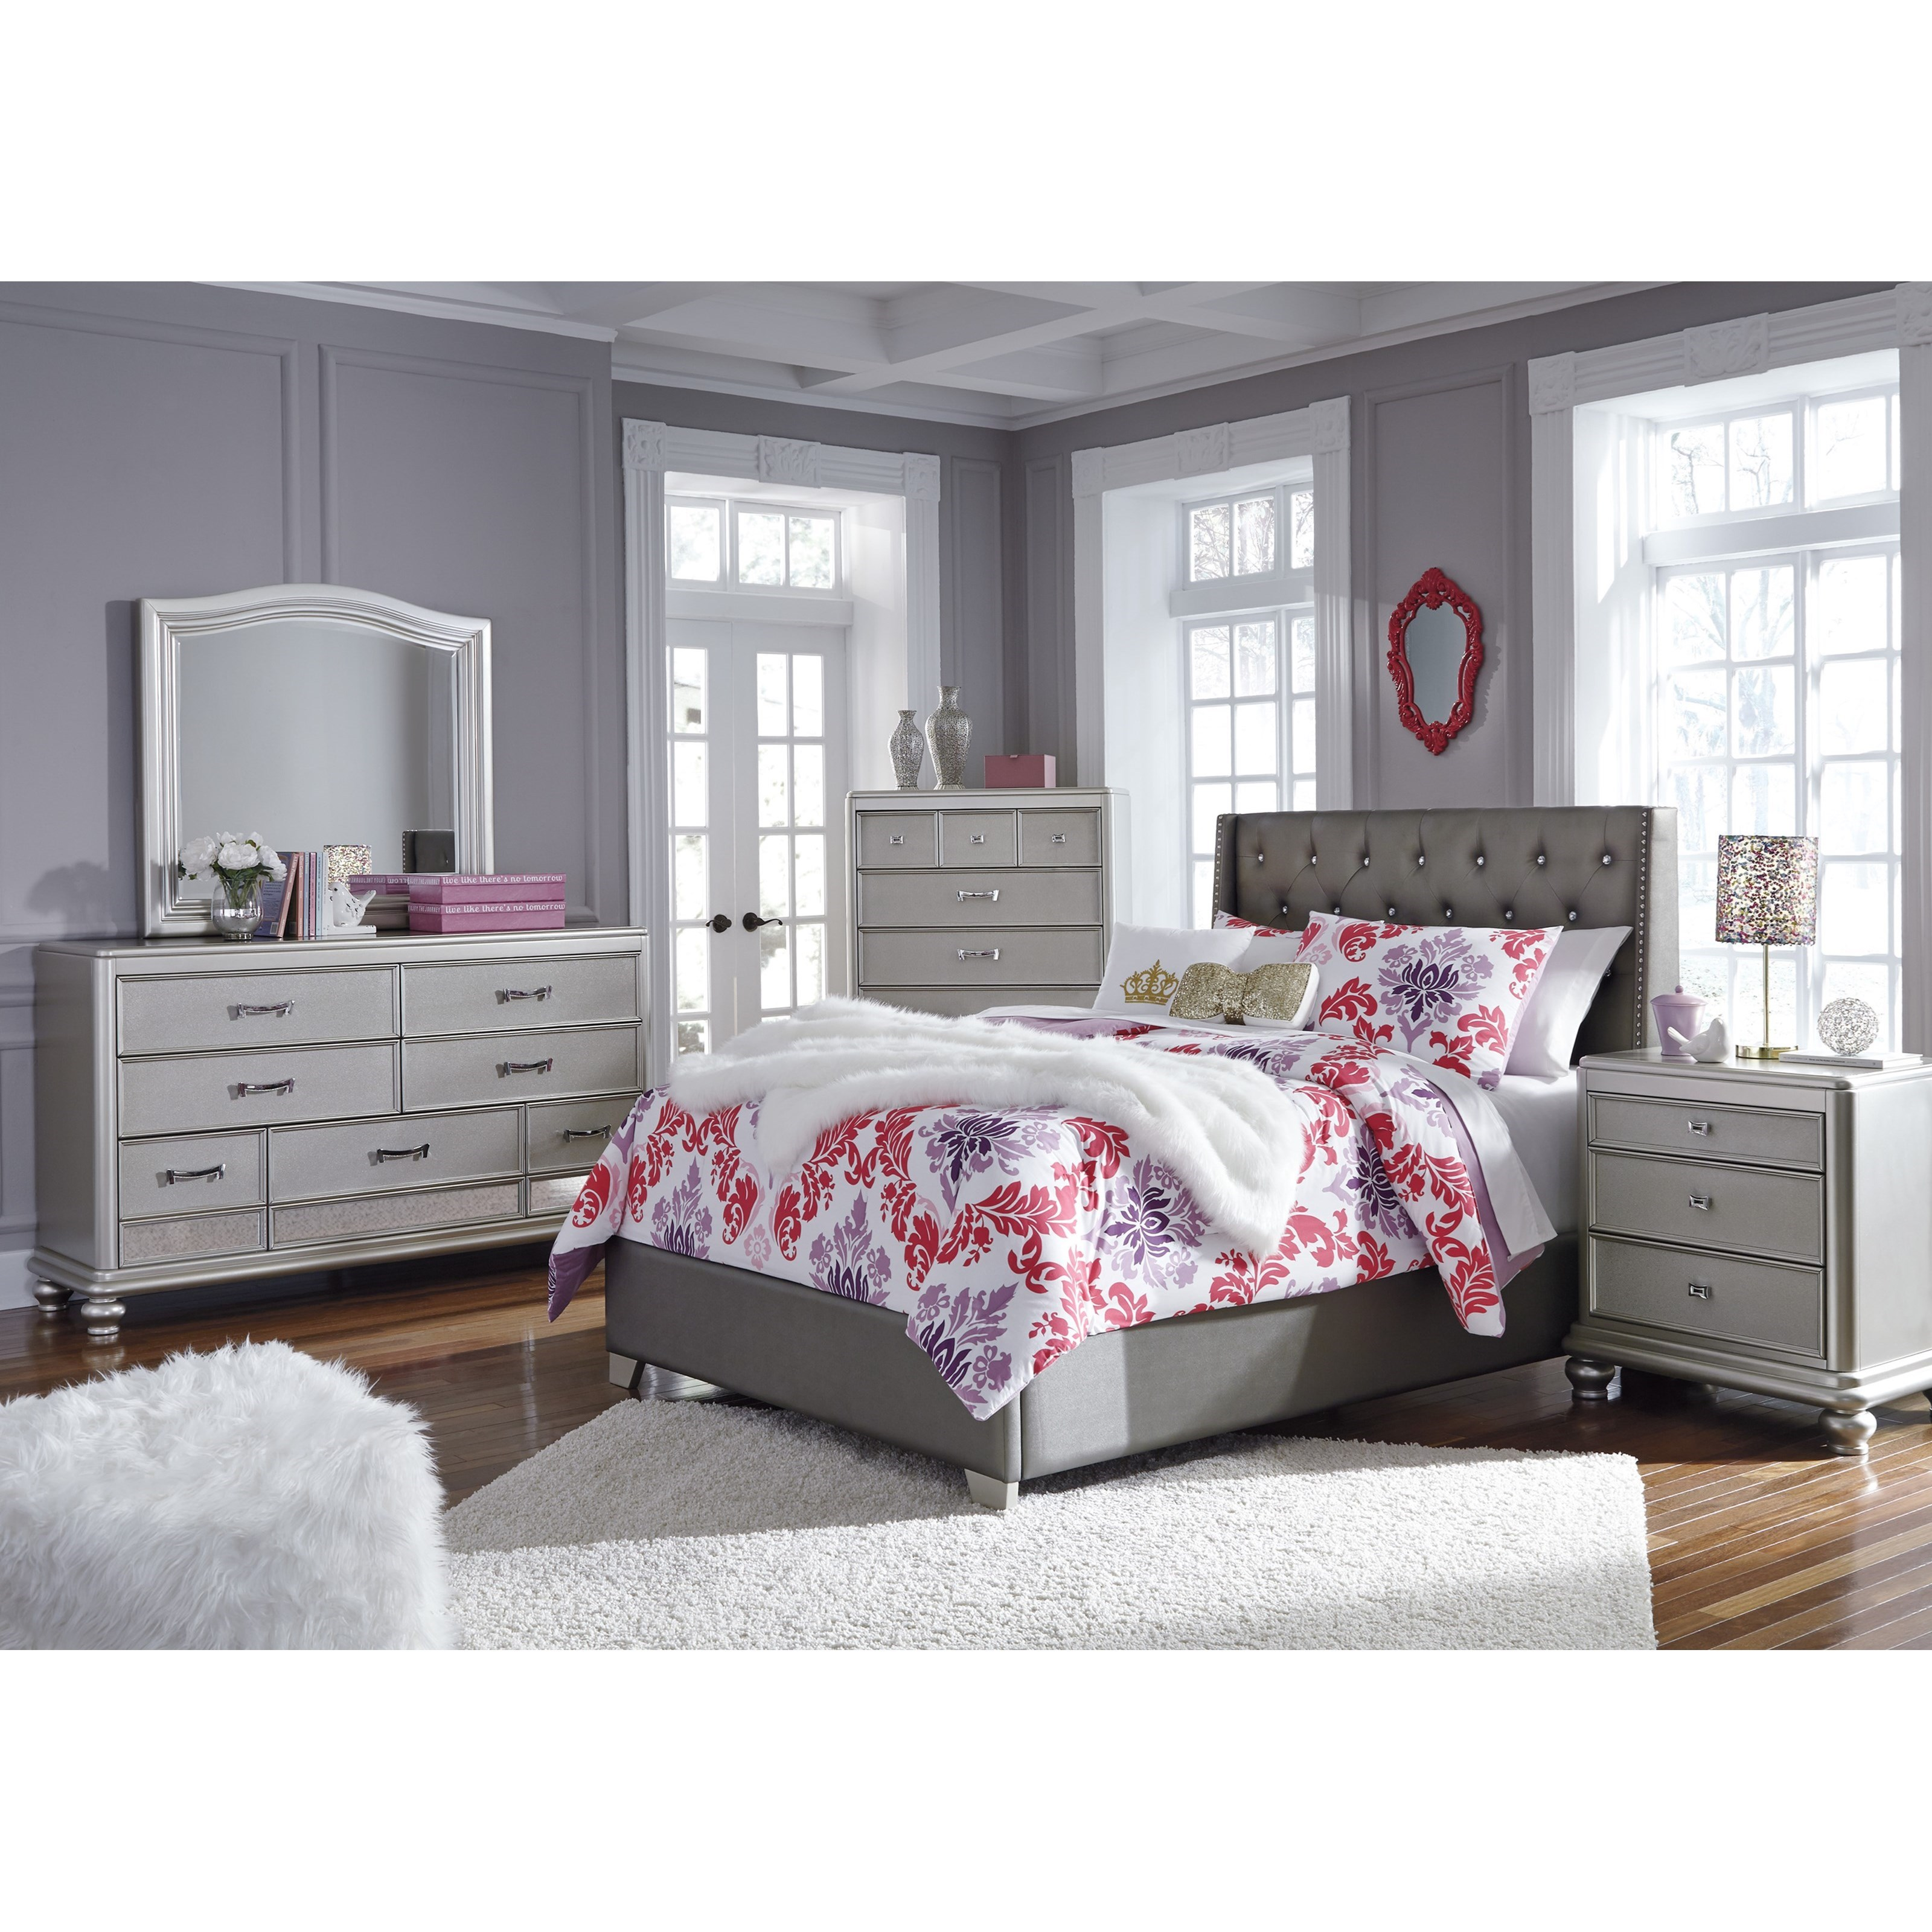 Signature Design By Ashley Coralayne Full Bedroom Group